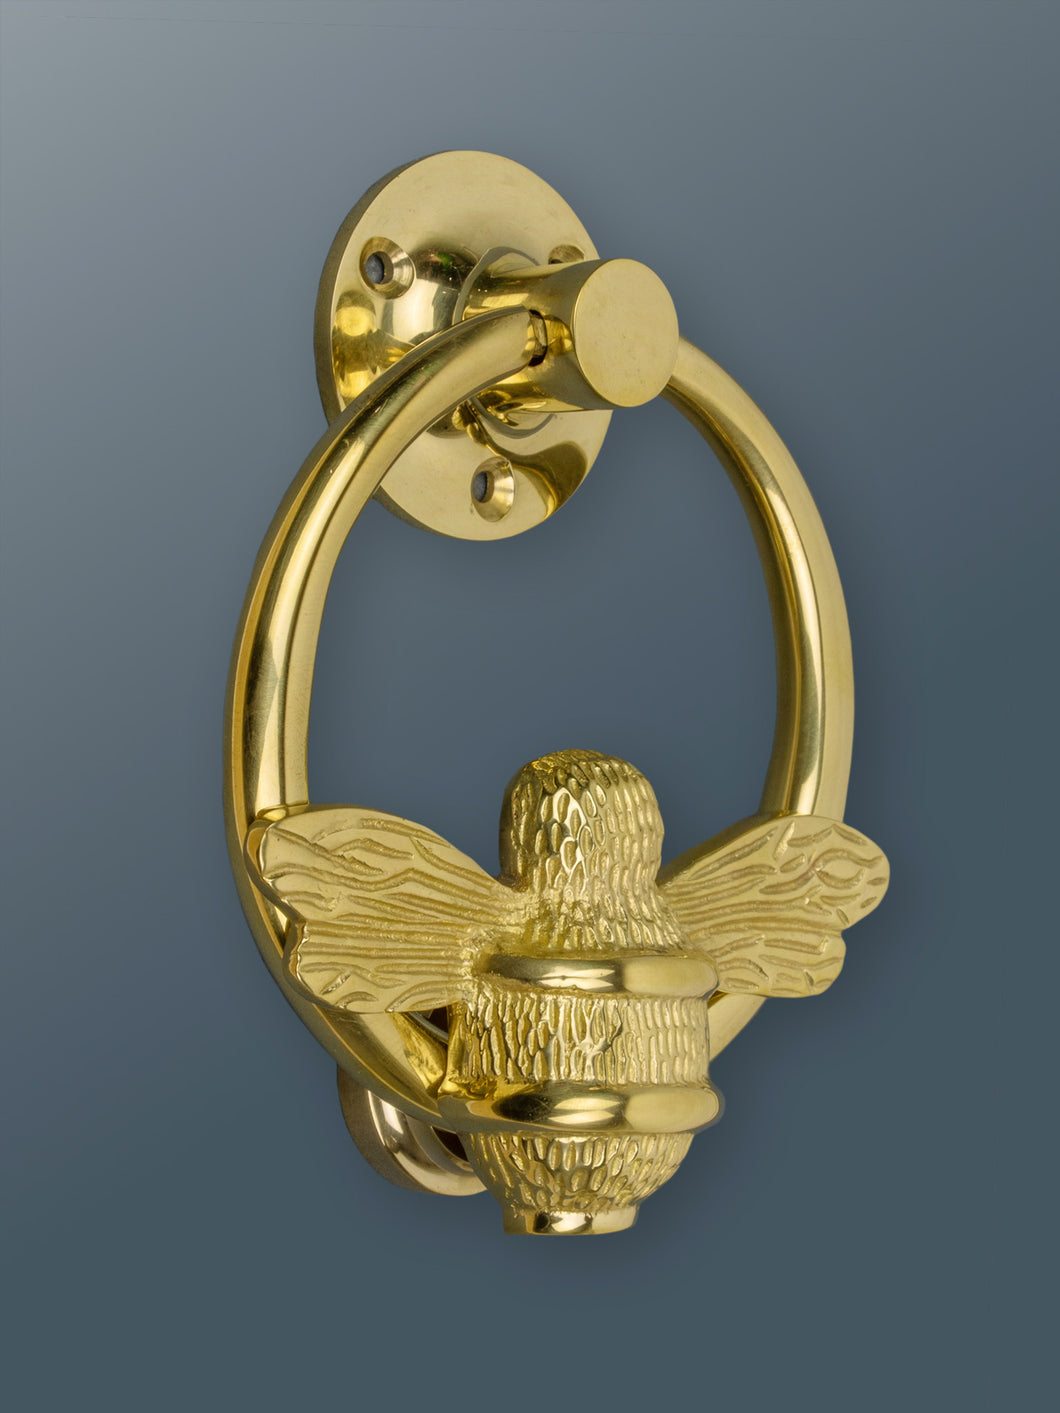 Brass Bumble Bee Ring Door Knocker - Brass Finish - Brass bee